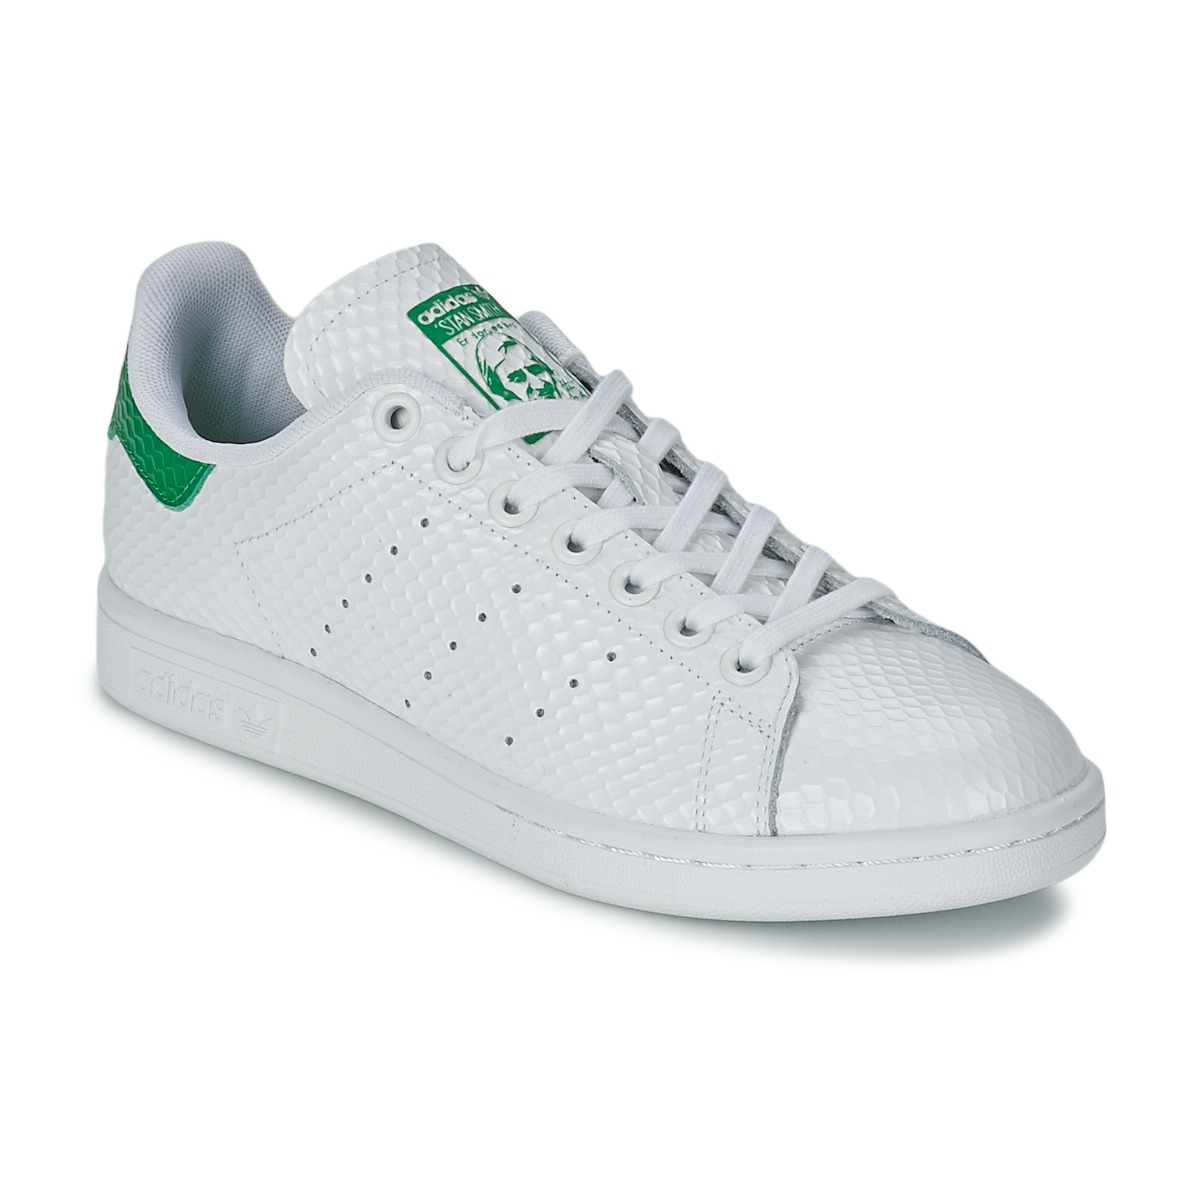 7ce318a58984d7 Baskets basses Adidas Originals STAN SMITH W Blanc - Baskets Femme Spartoo